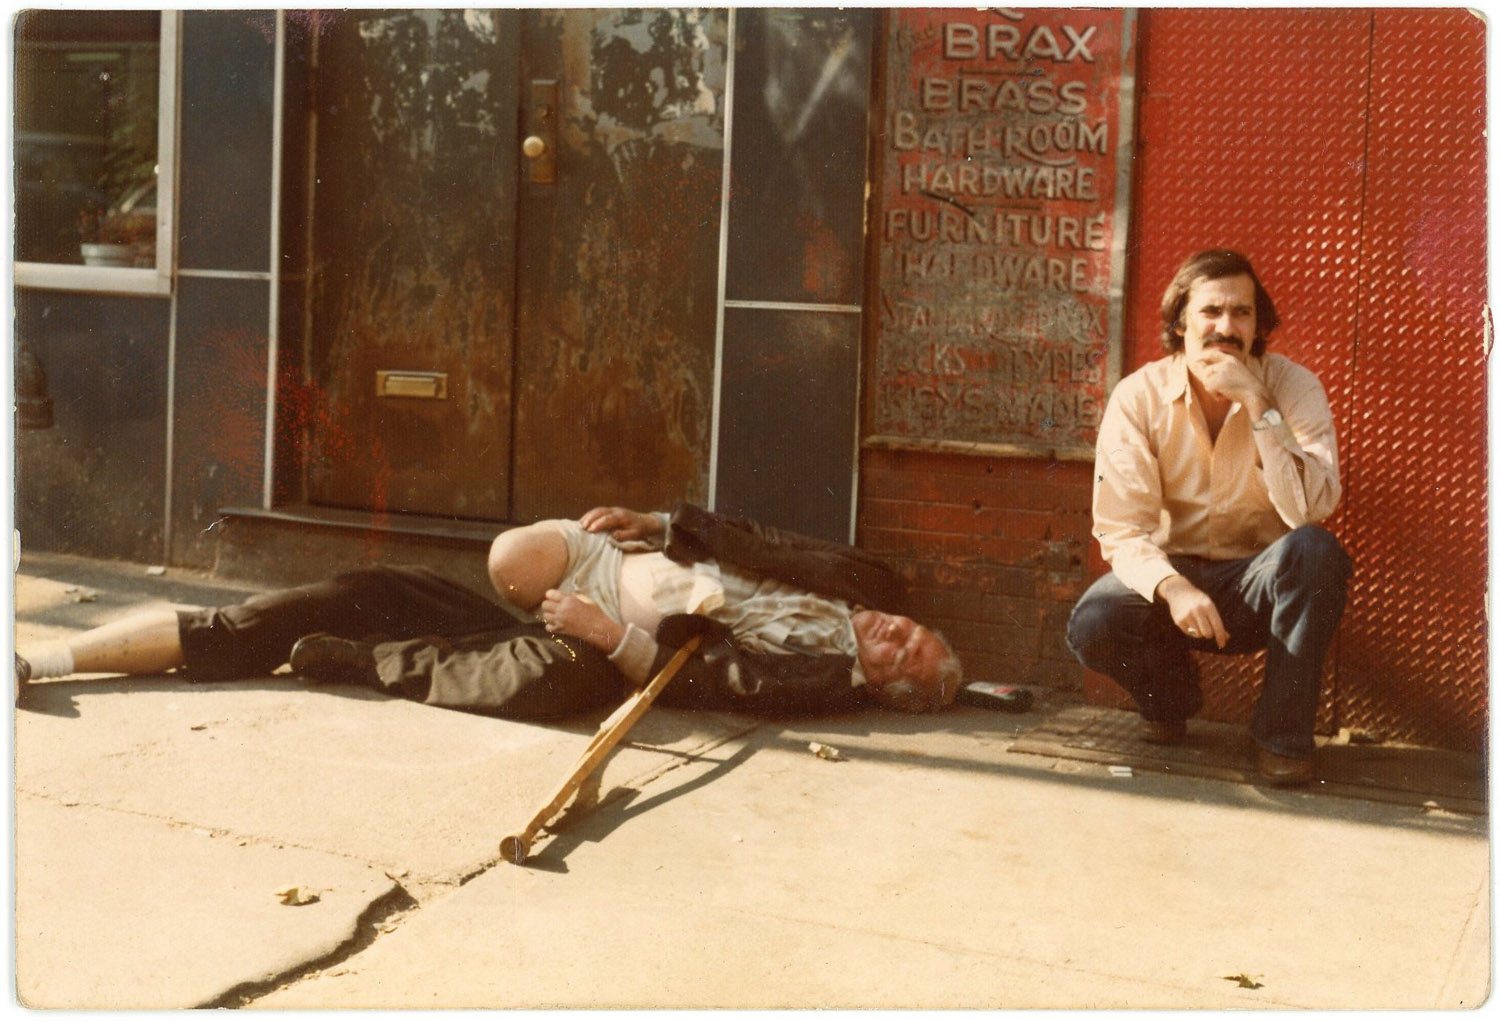 Outside the doorway to 98 Bowery with Harry's Bar to the left, 1975